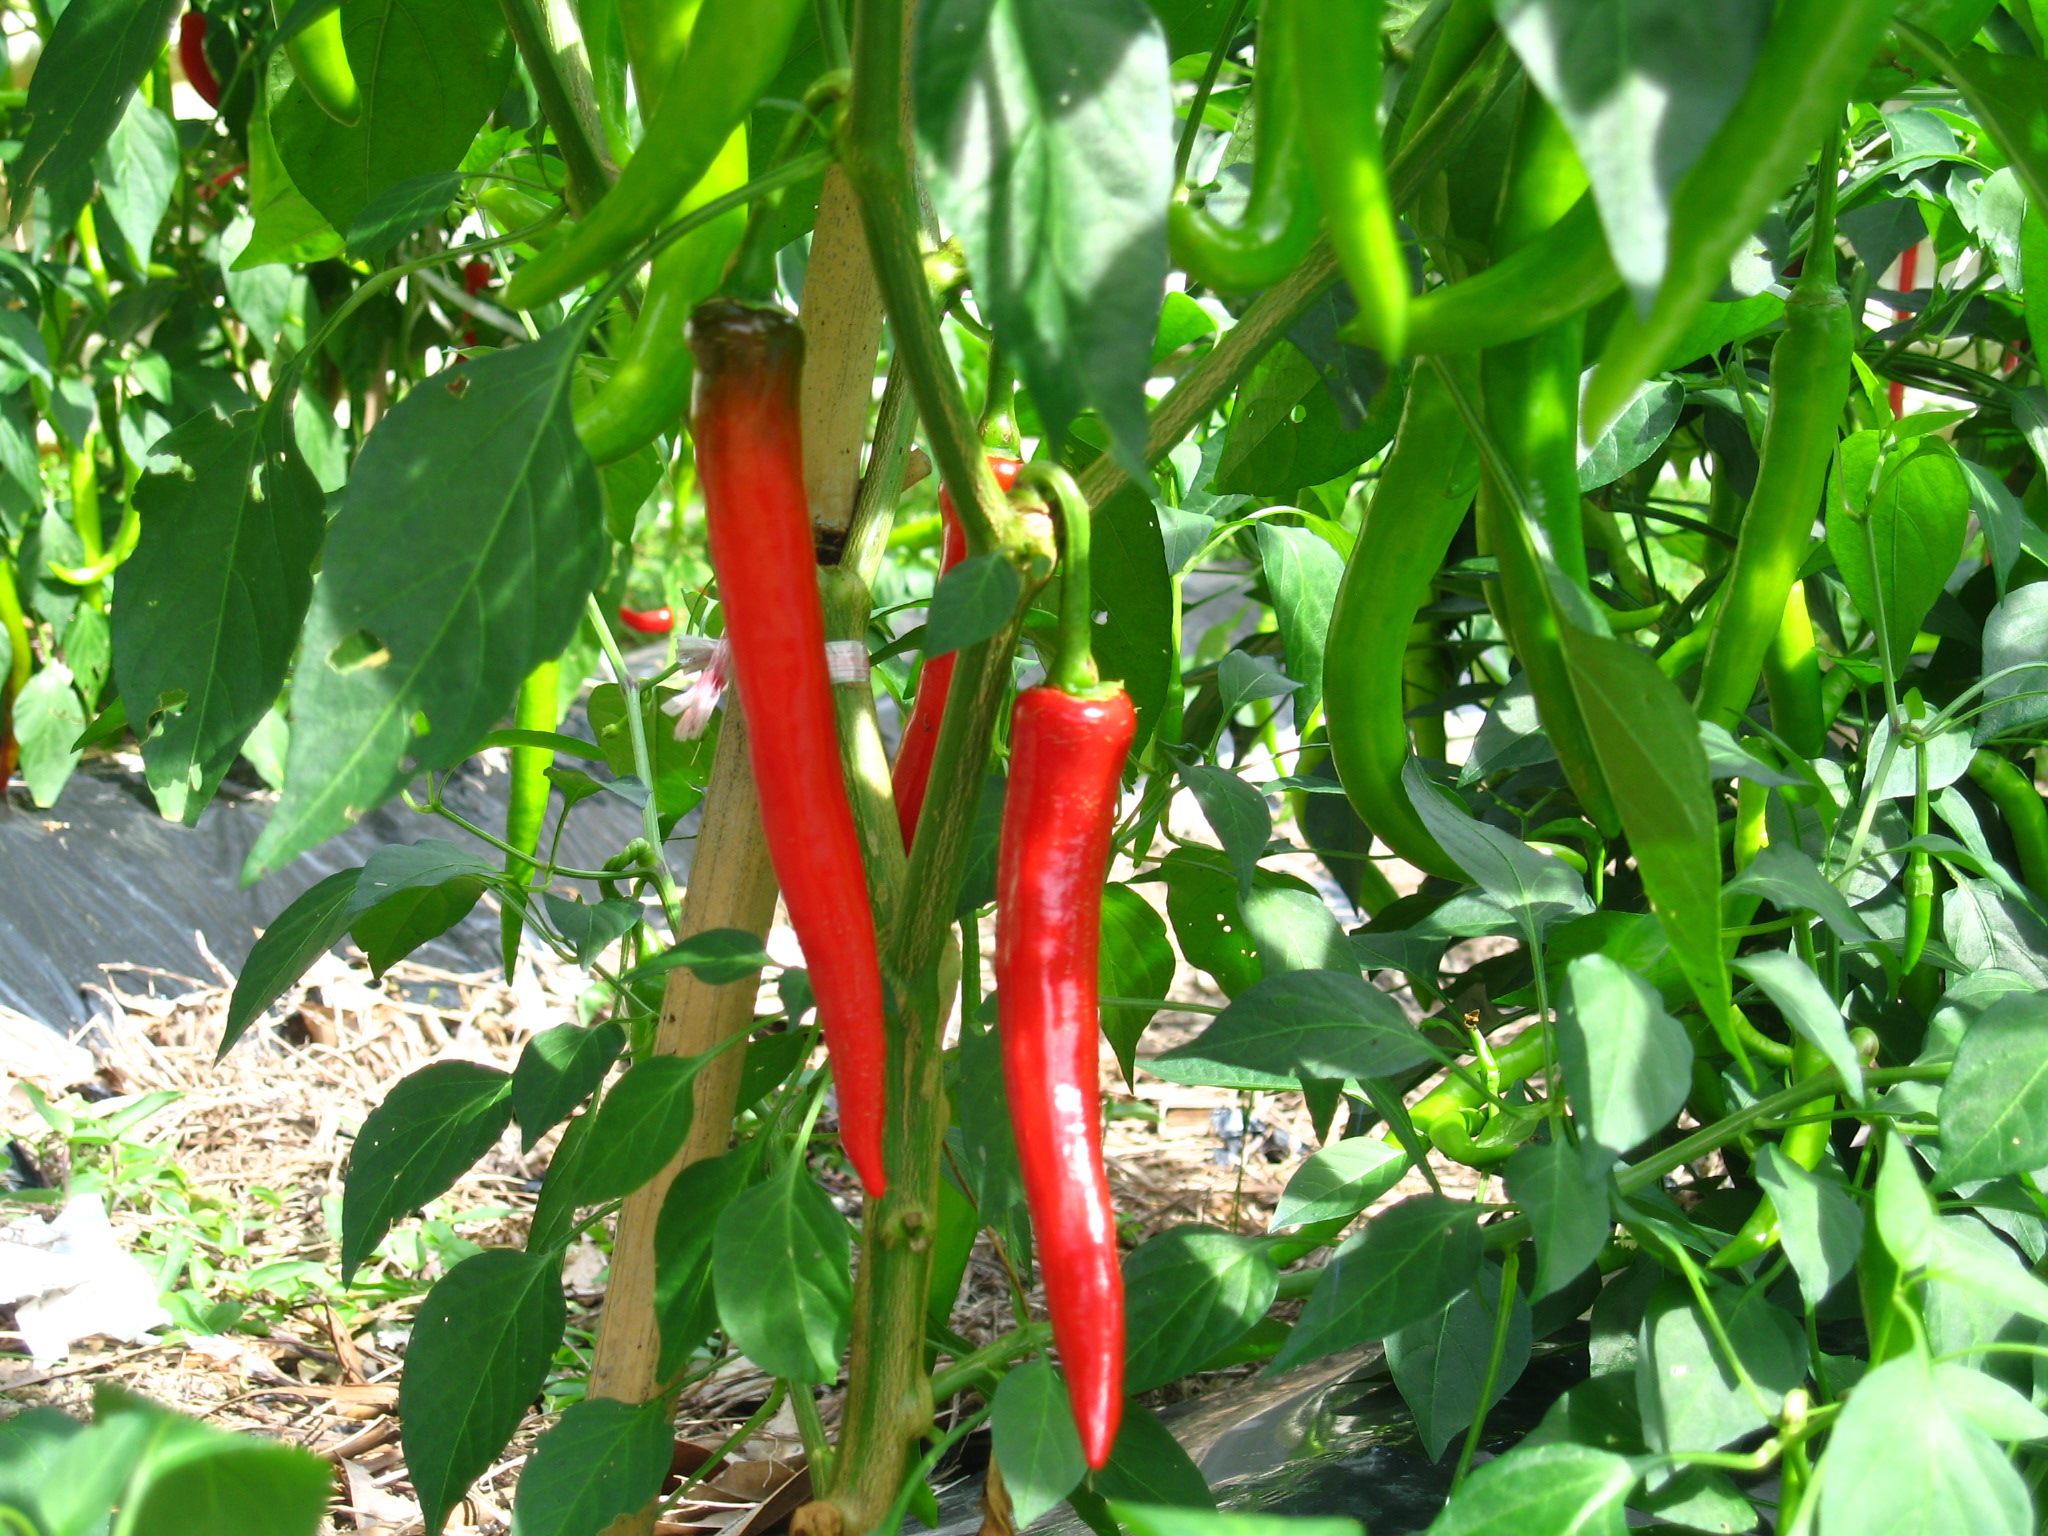 These medium-hot Malaysian chillis are just starting to turn red.